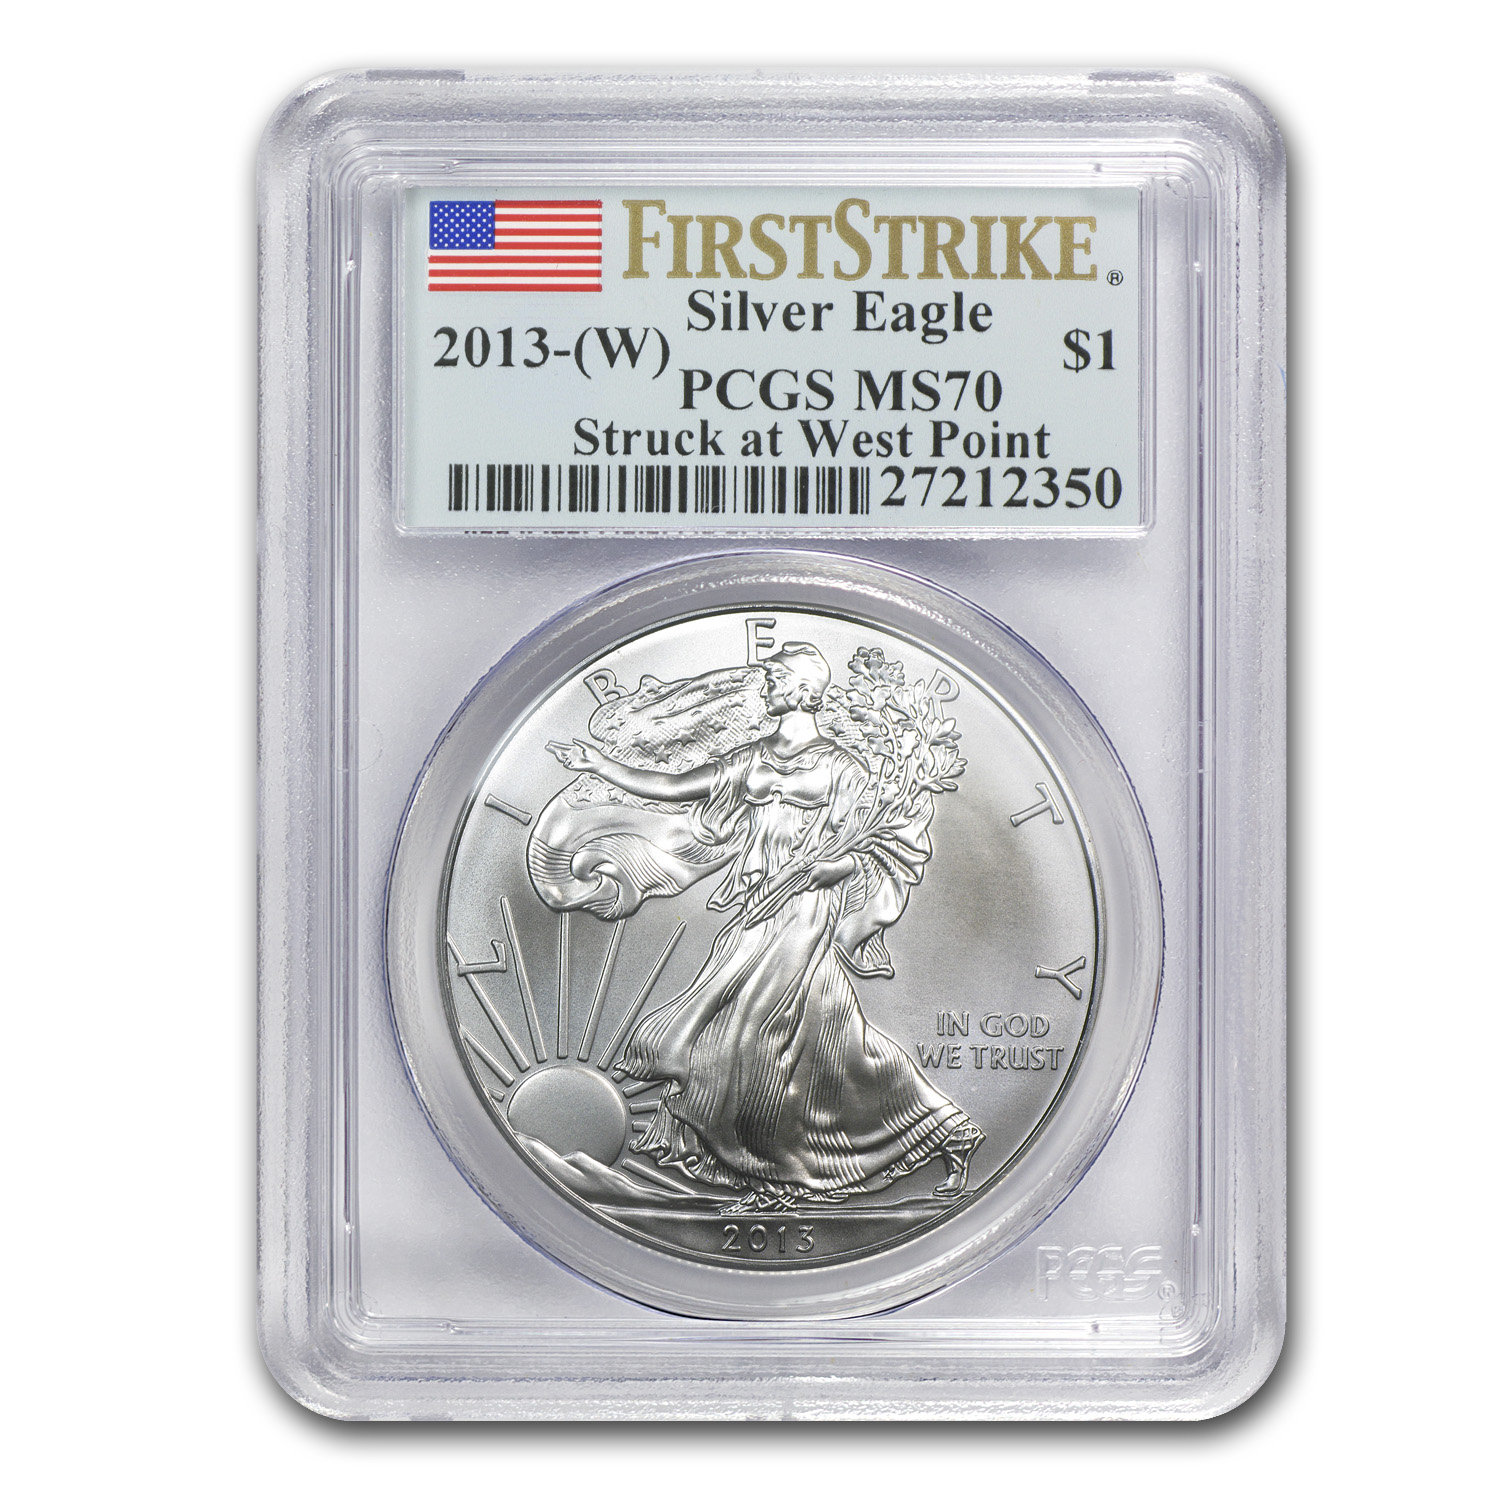 2013 (W) Silver American Eagle MS-70 PCGS - First Strike